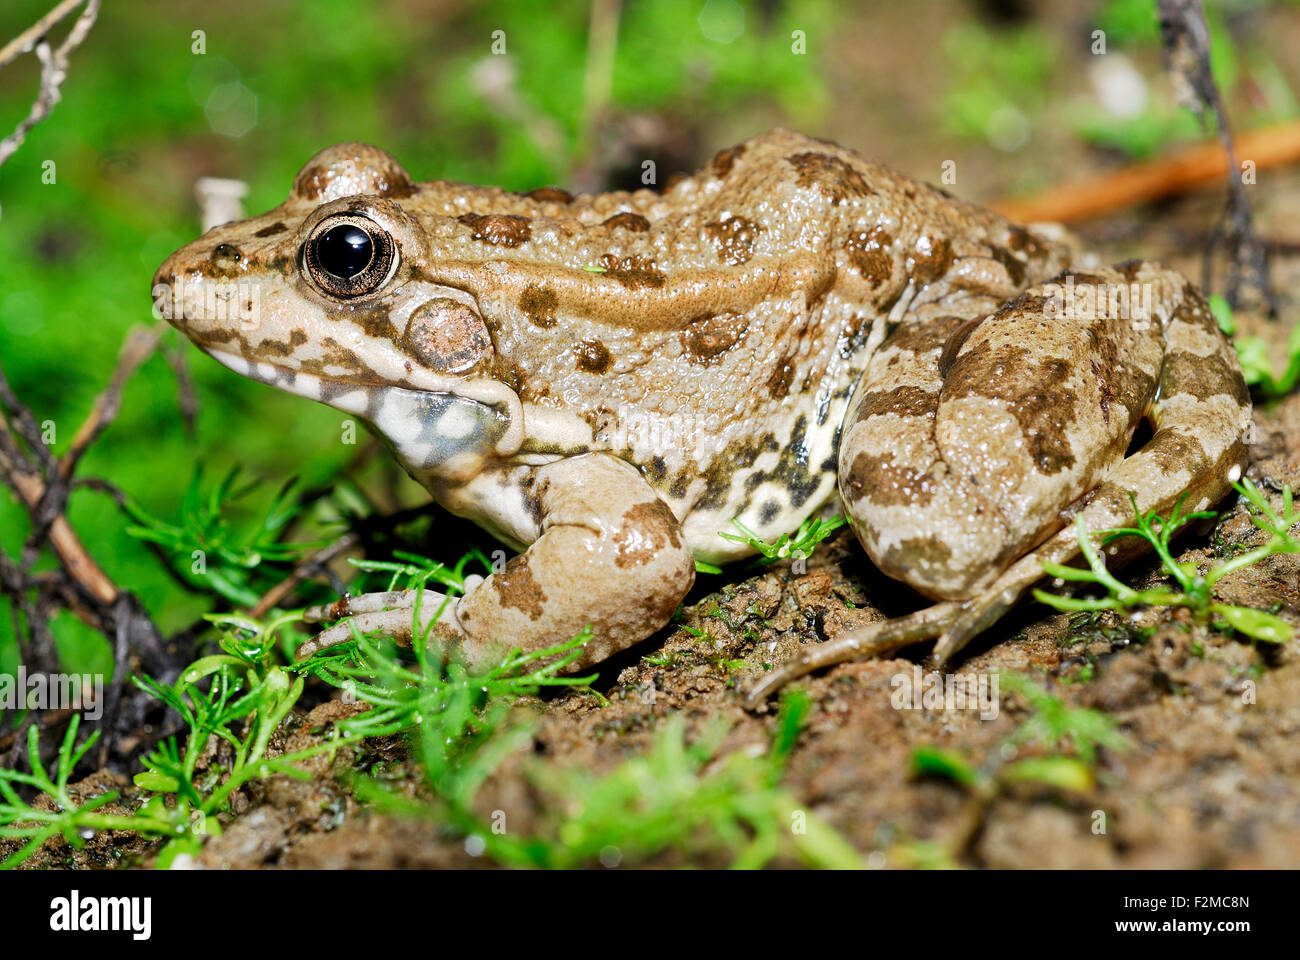 Green common frog (Pelophylax perezi) in a pond of Valdemanco, Madrid, Spain - Stock Image